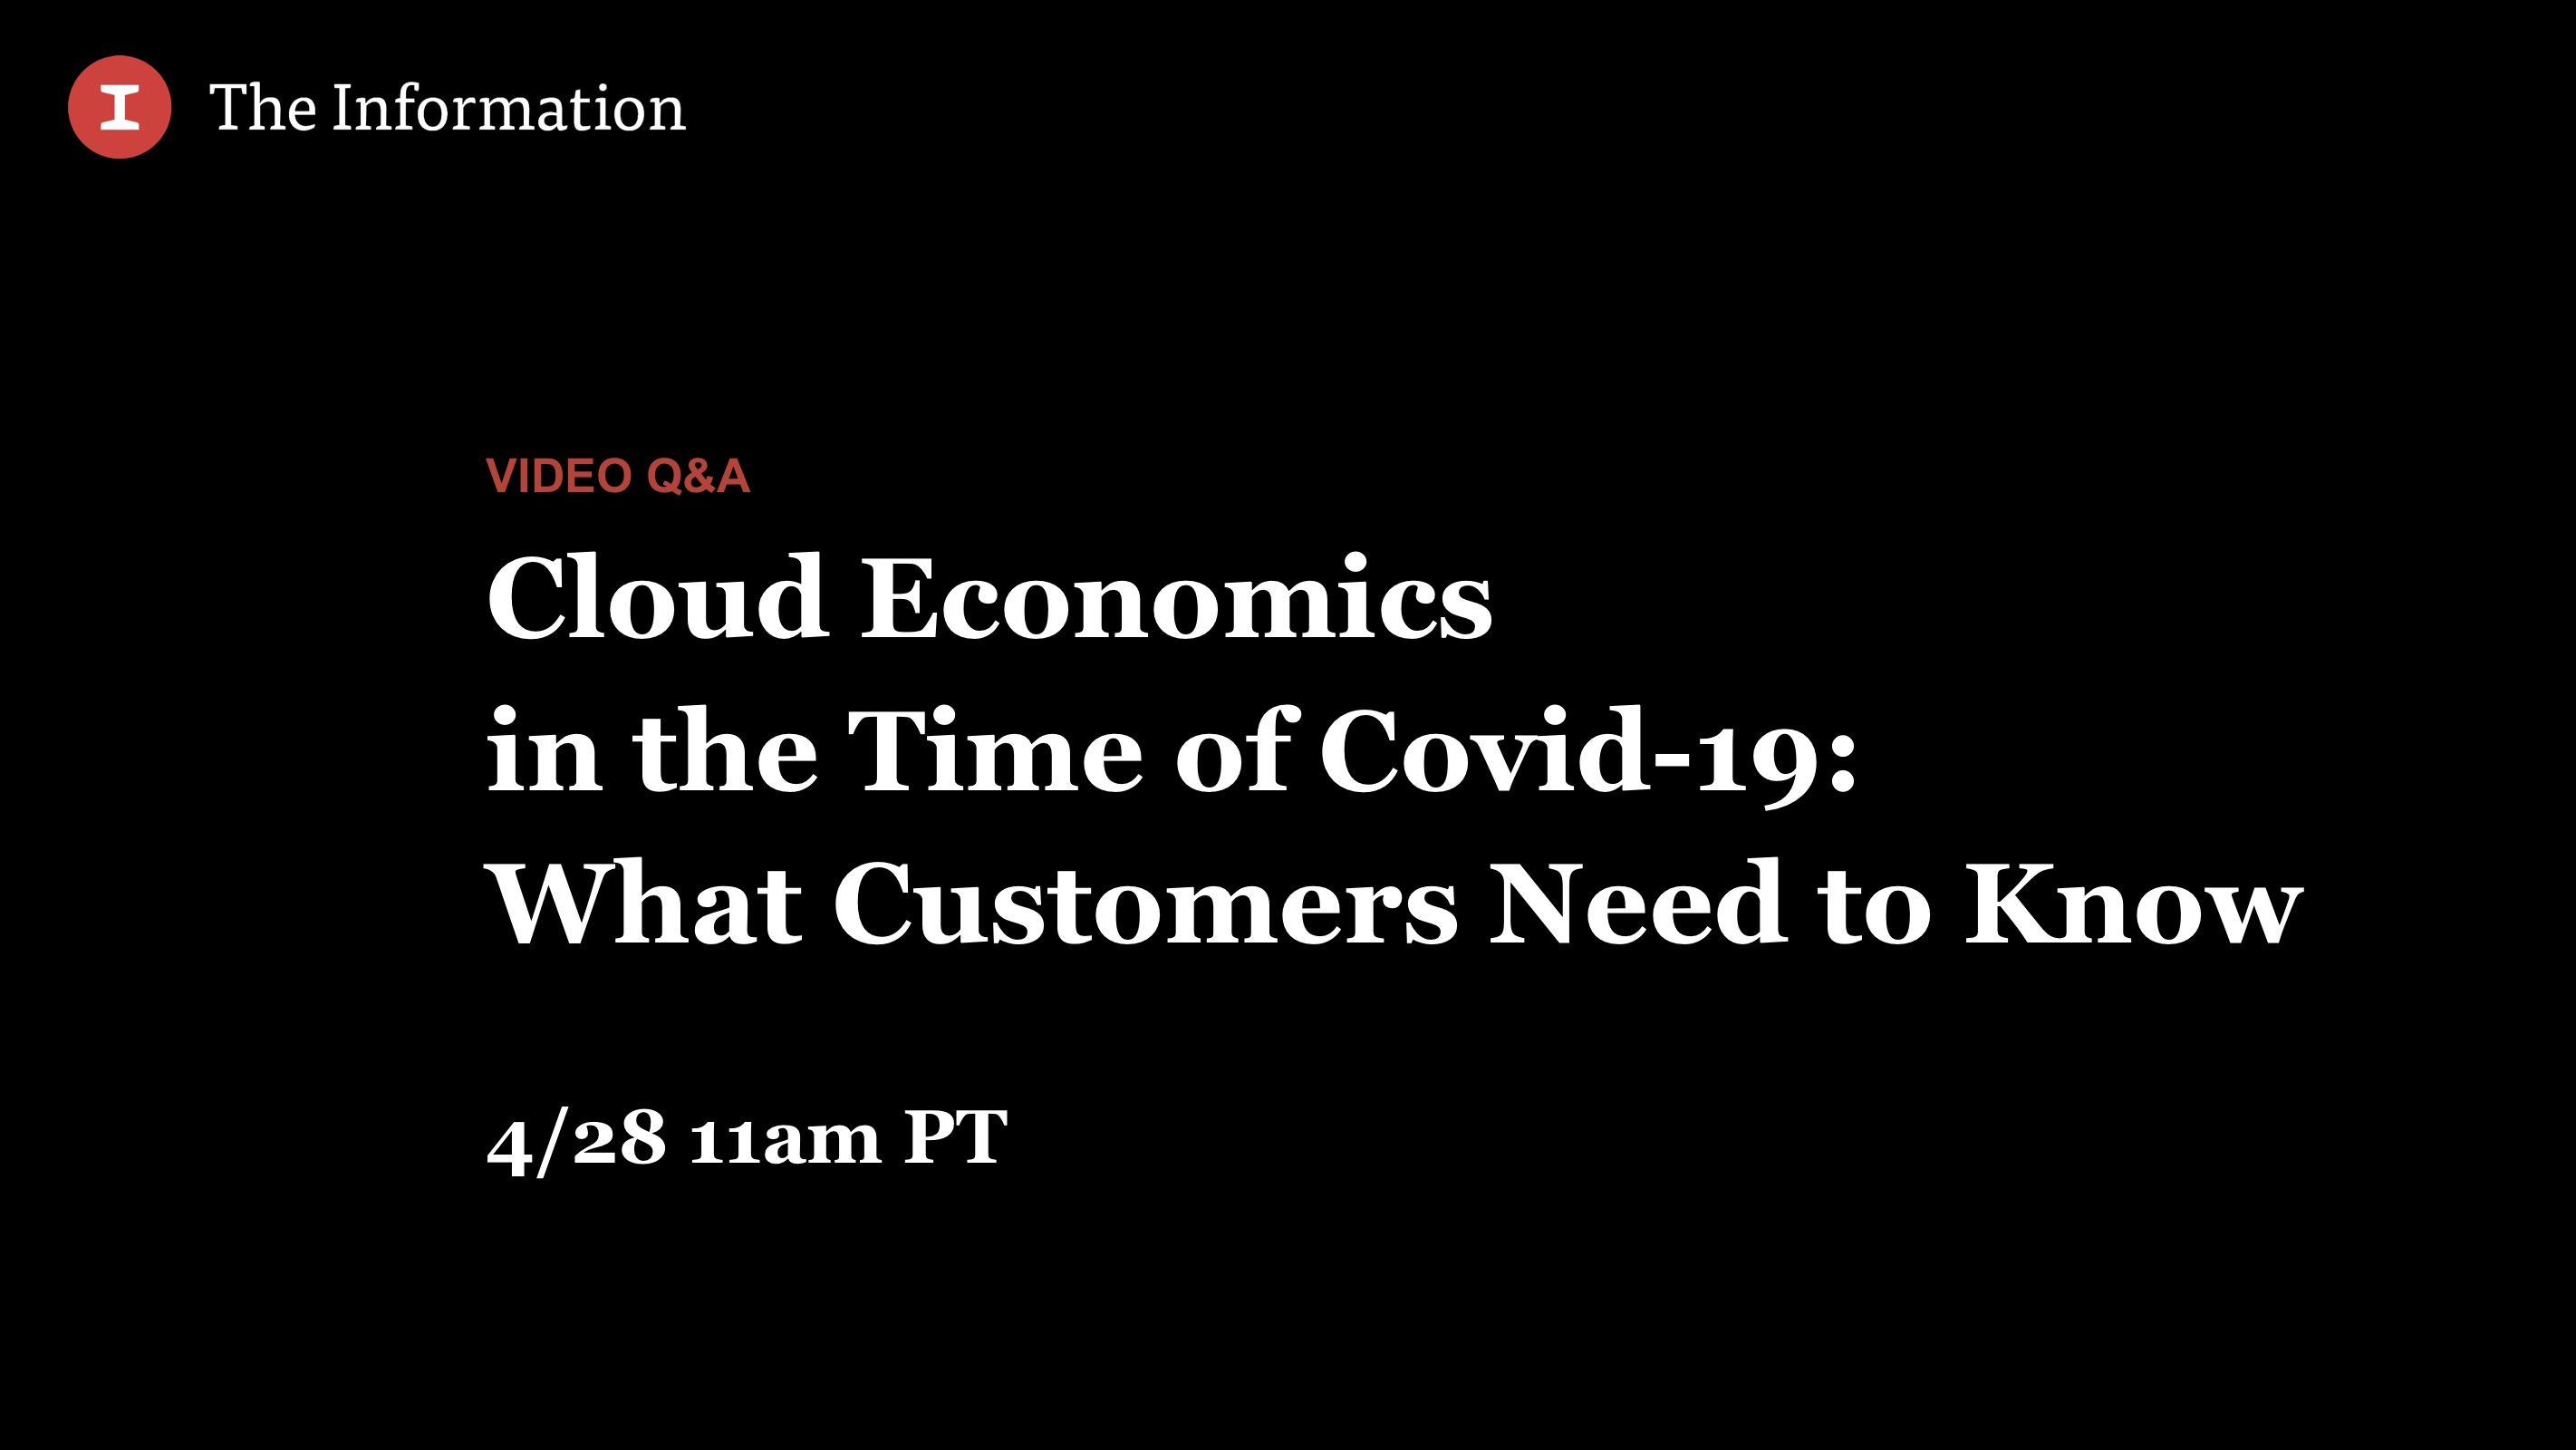 Cloud Economics in the Time of Covid-19: What Customers Need to Know